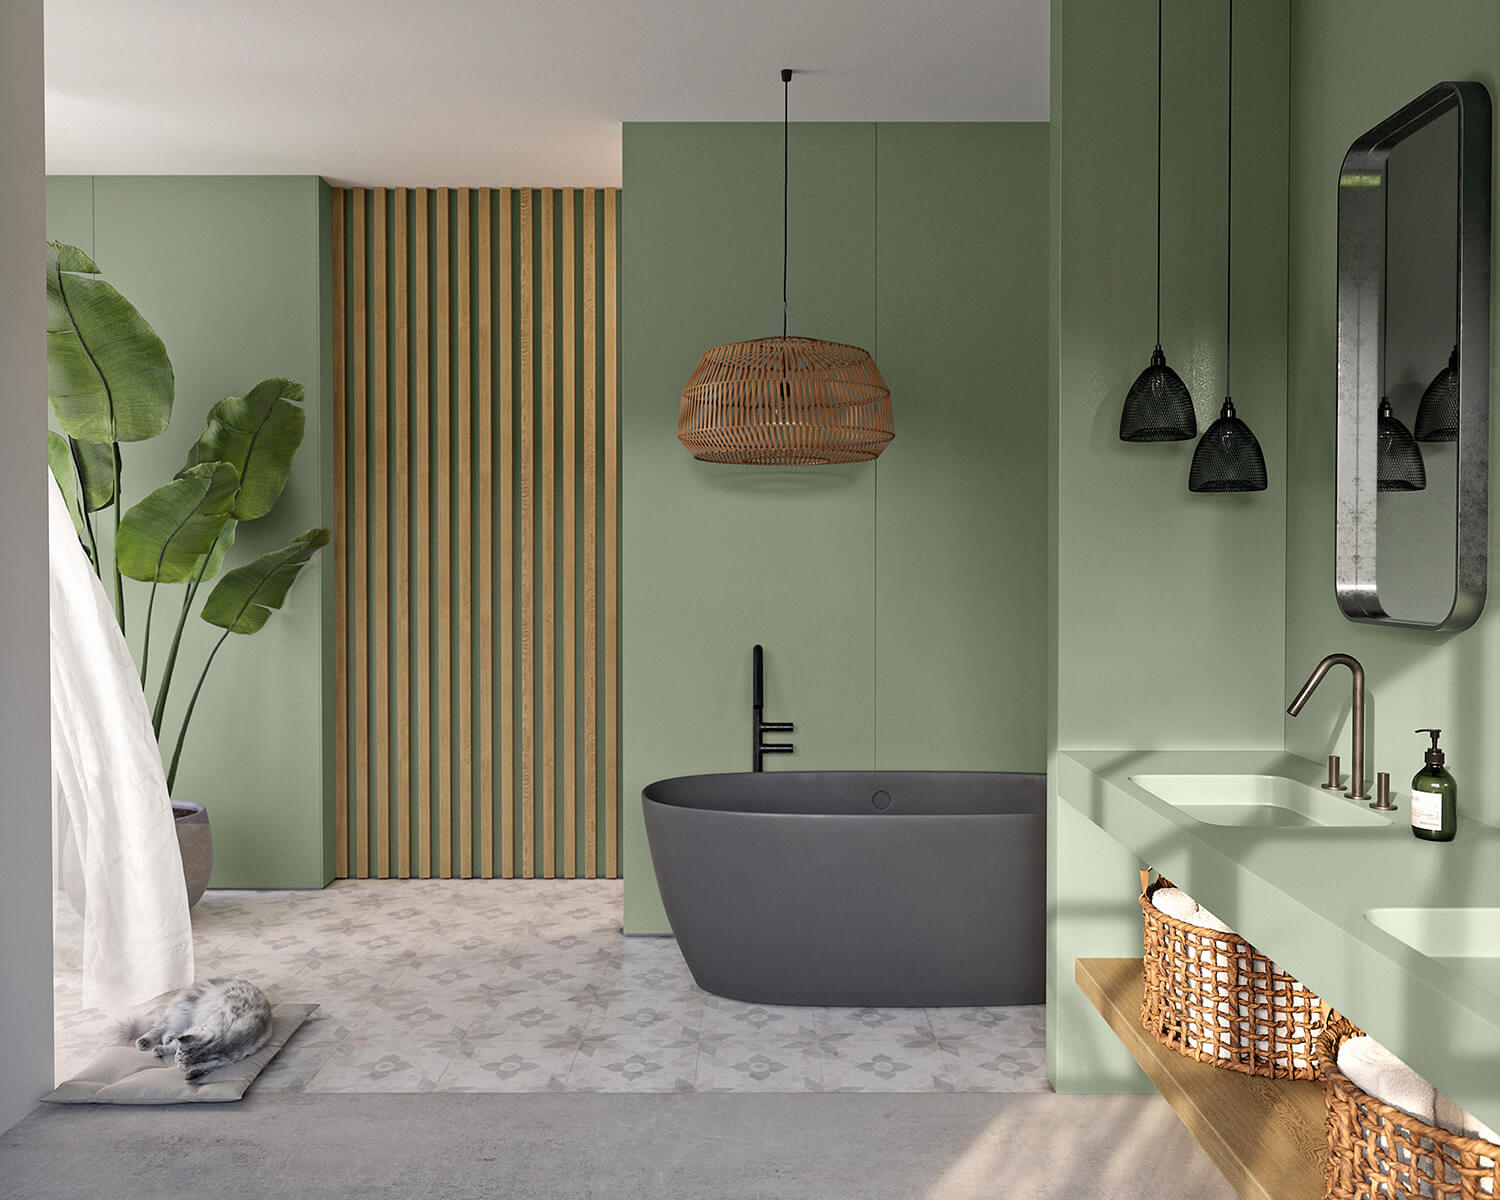 Bathroom with green walls and Silestone countertop, with grey bathtub and floors and wood/wicker accents